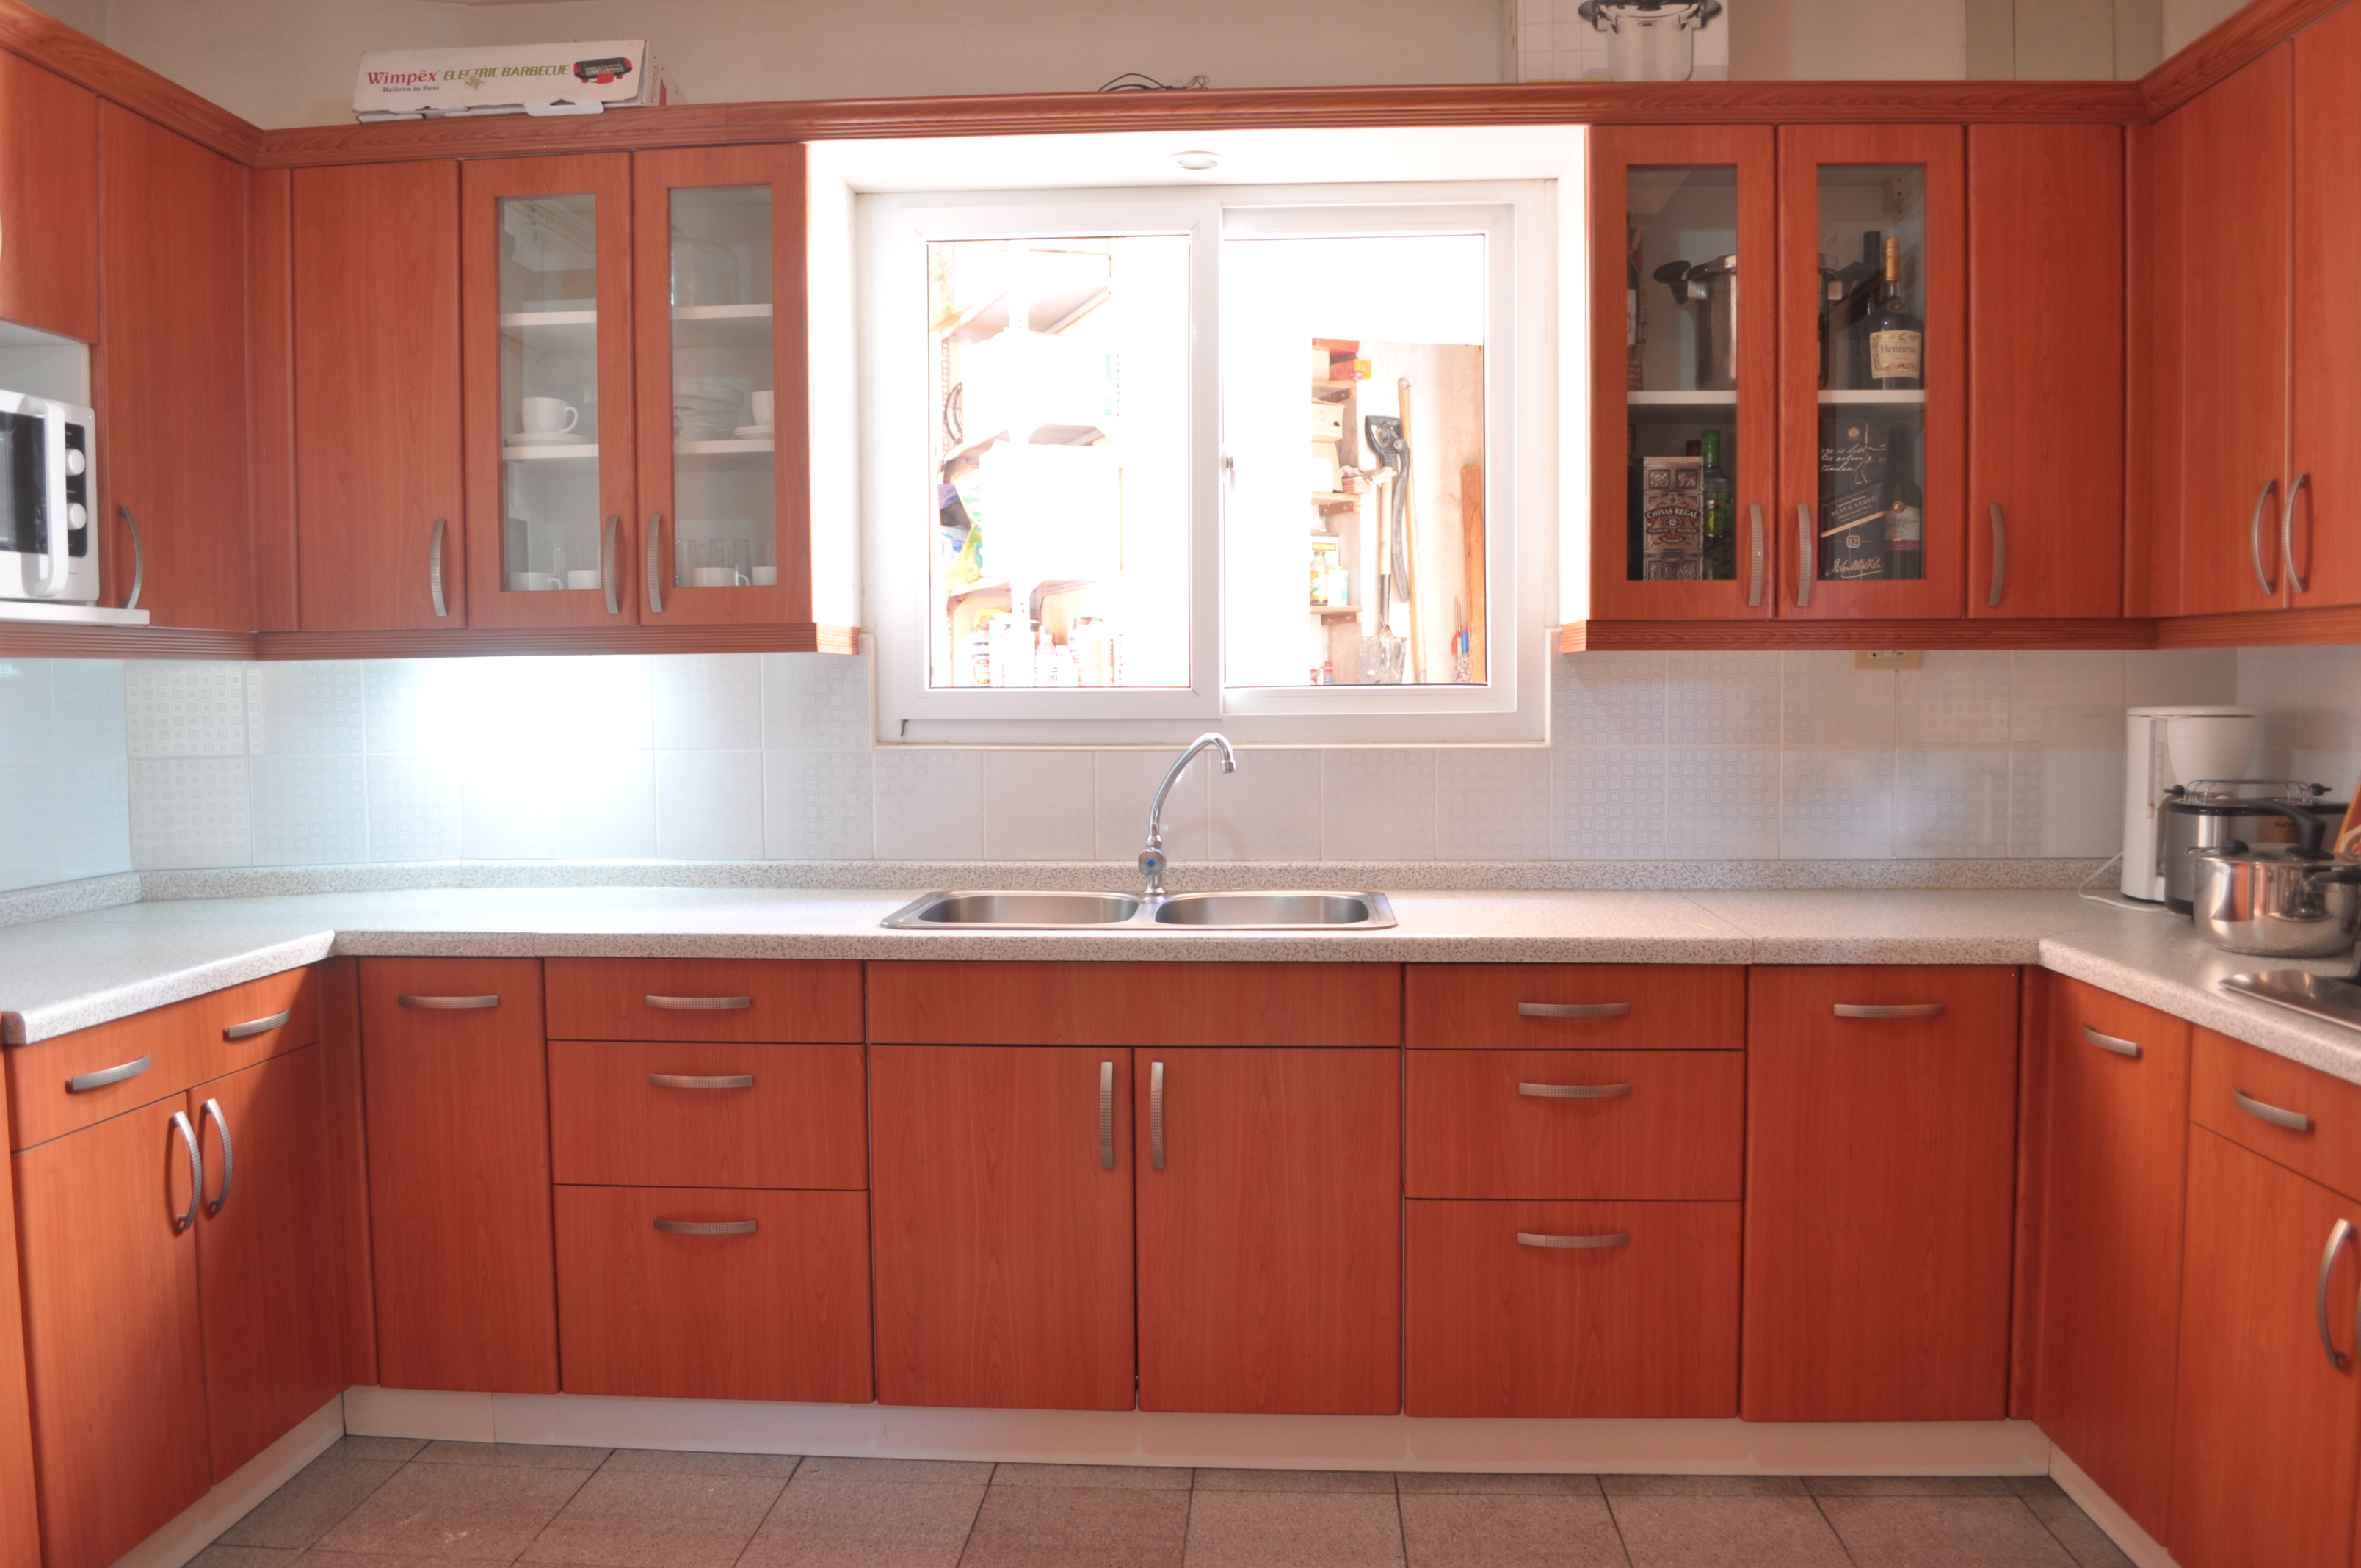 â kitchen cabinet lustrouscolors kitchen cabinet prices